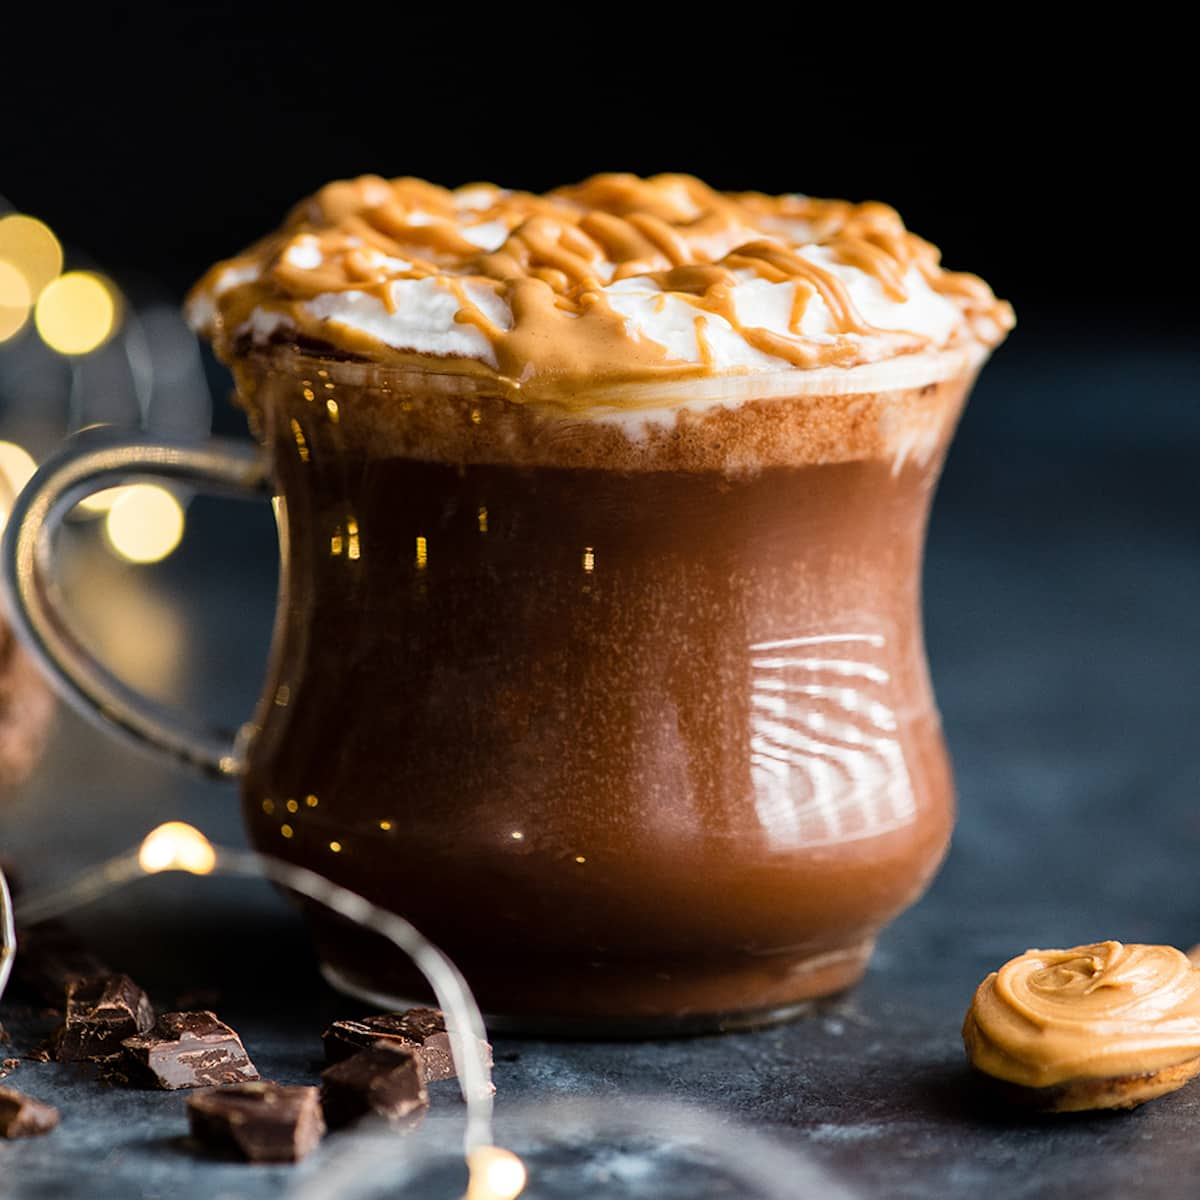 a glass mug filled with Peanut Butter Hot Chocolate topped with whipped cream and a drizzle of peanut butter